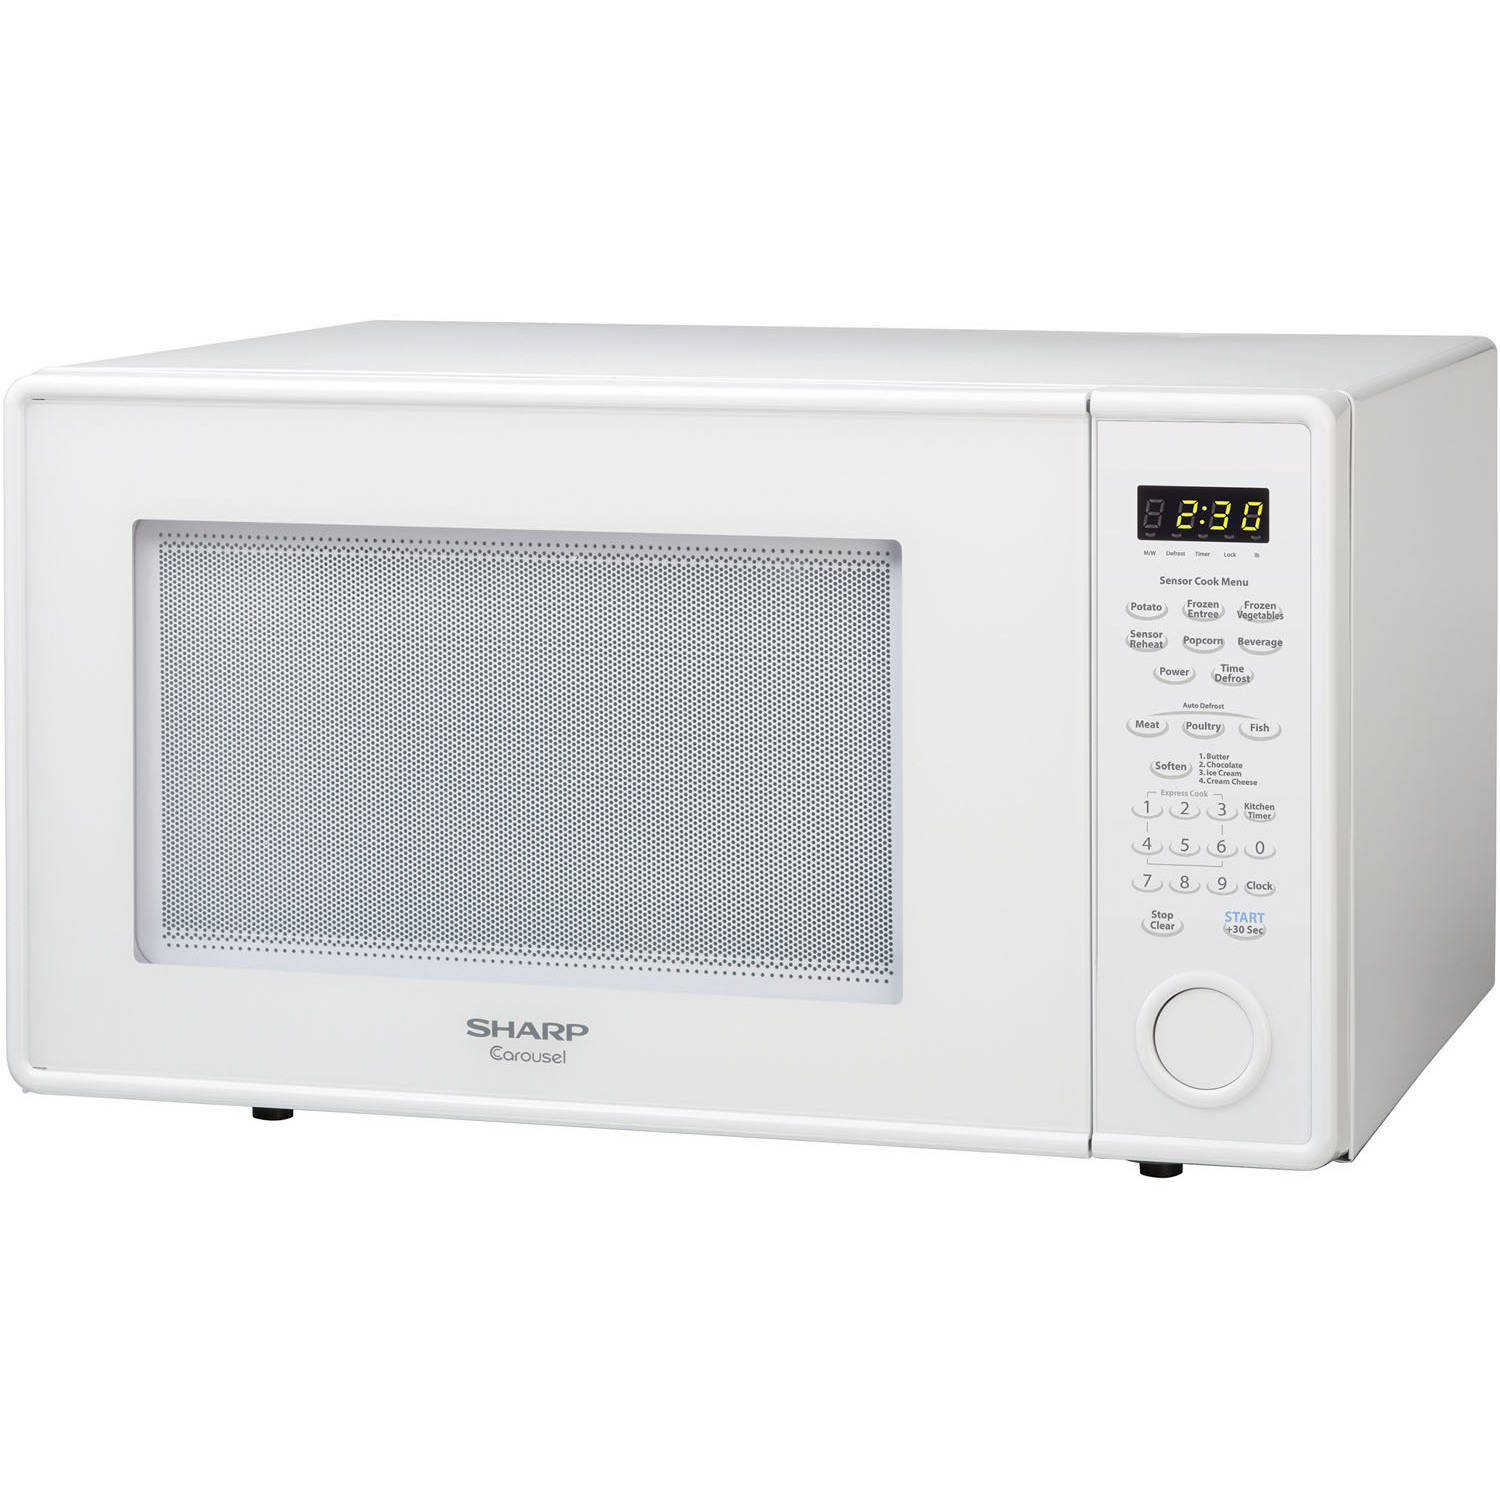 Sharp R559yw Carousel Countertop Microwave Oven 1 8 Cu Ft 1100w White